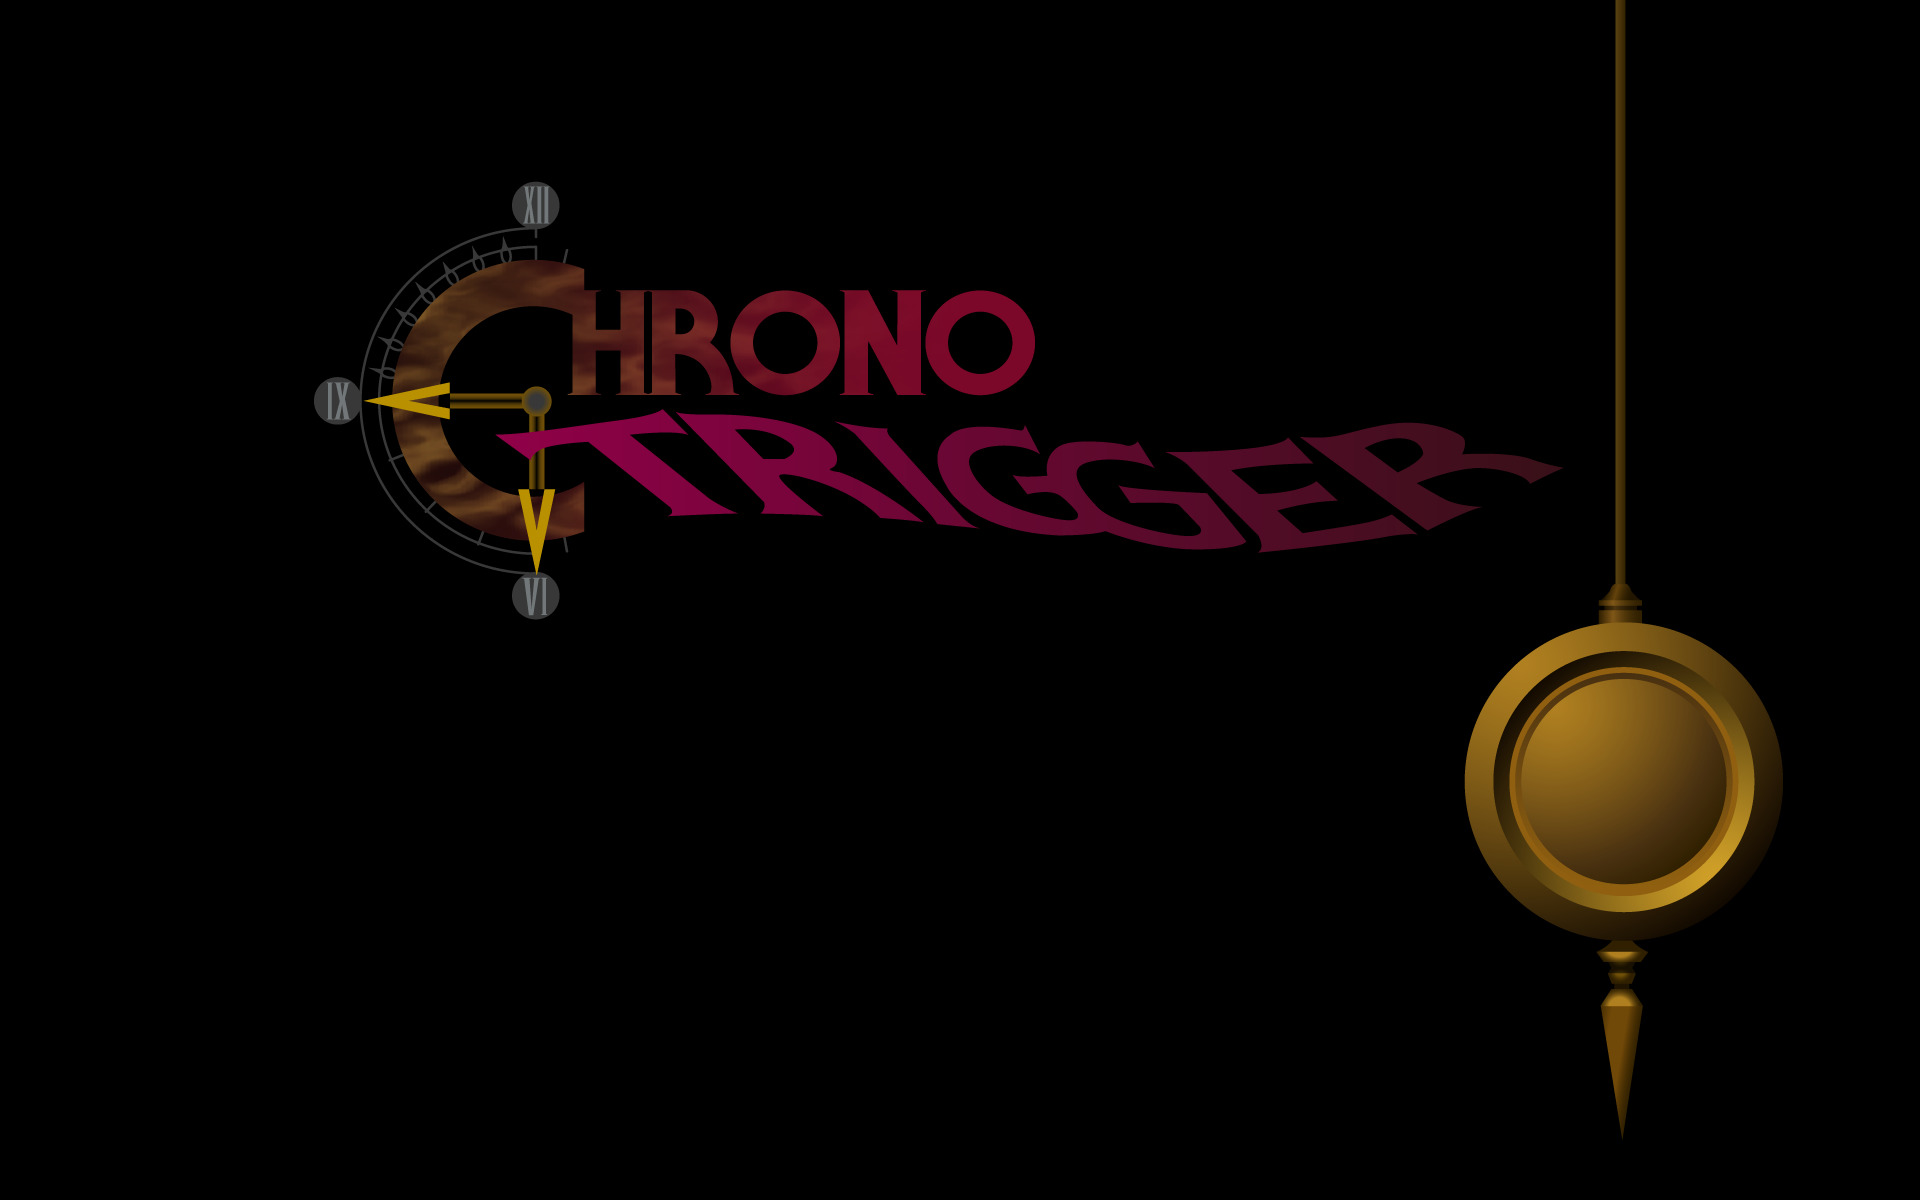 video Games chrono trigger HD Wallpaper